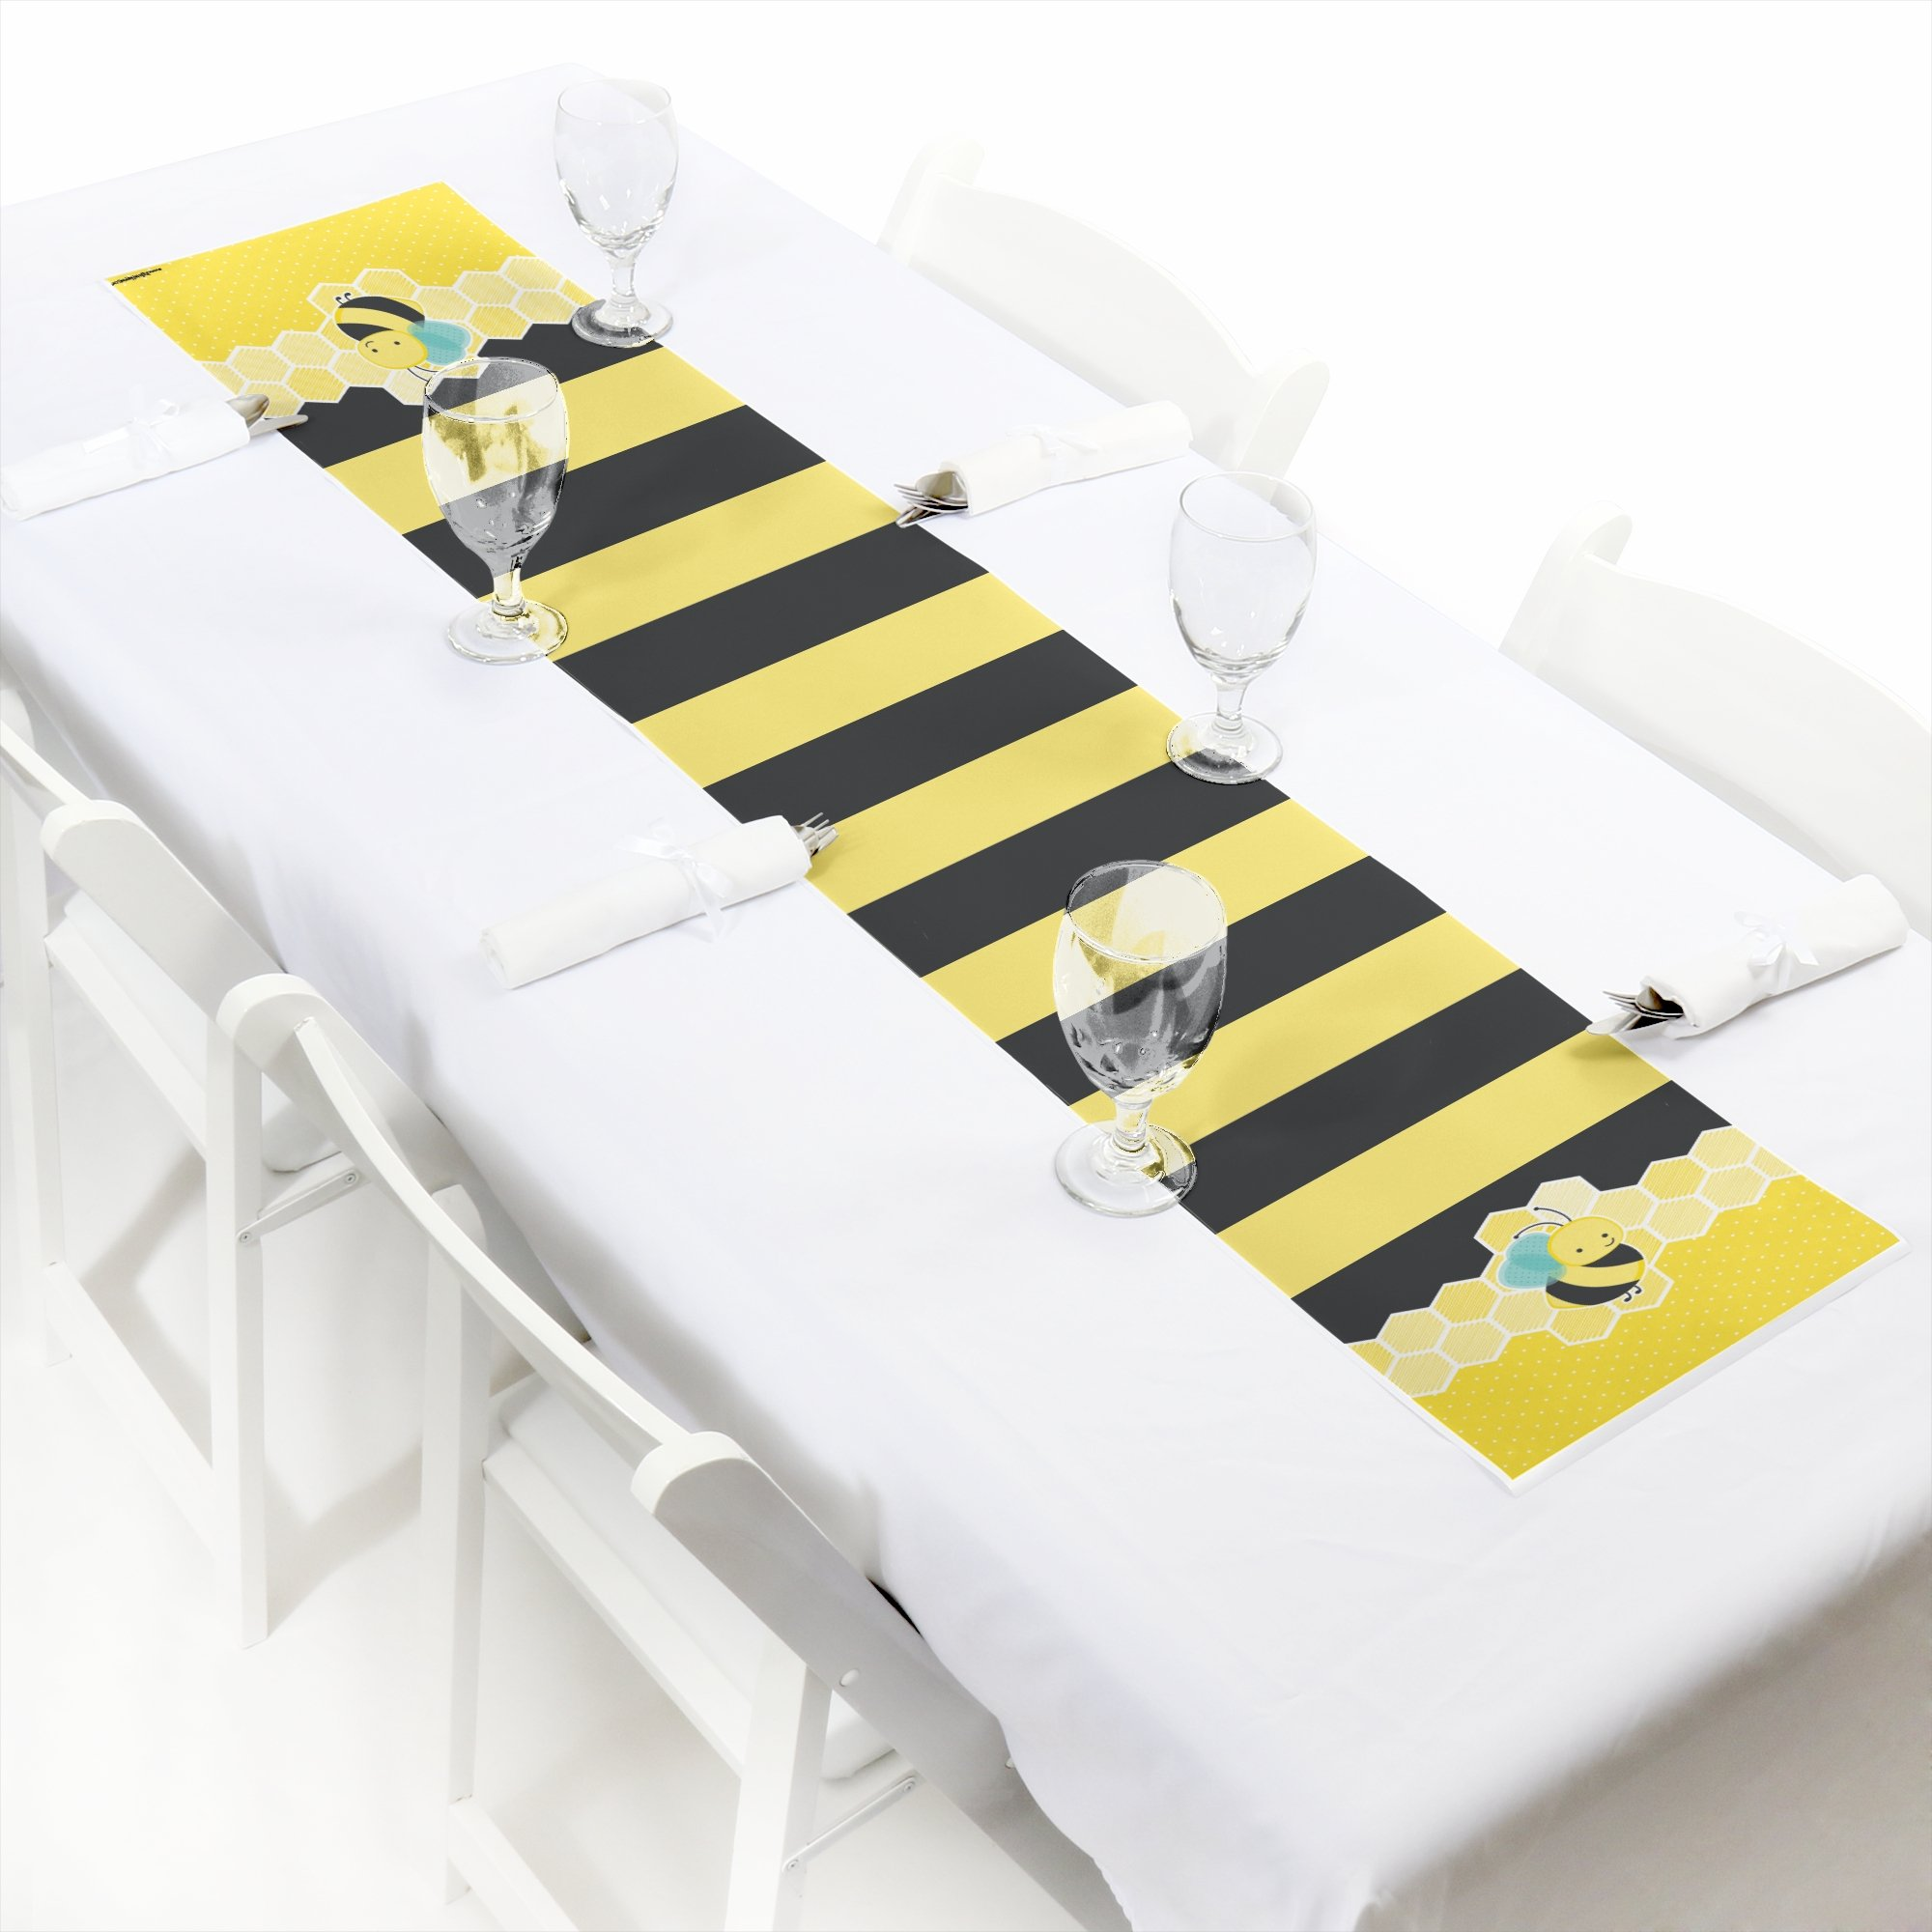 Honey Bee - Petite Baby Shower or Birthday Party Paper Table Runner - 12'' x 60'' by Big Dot of Happiness